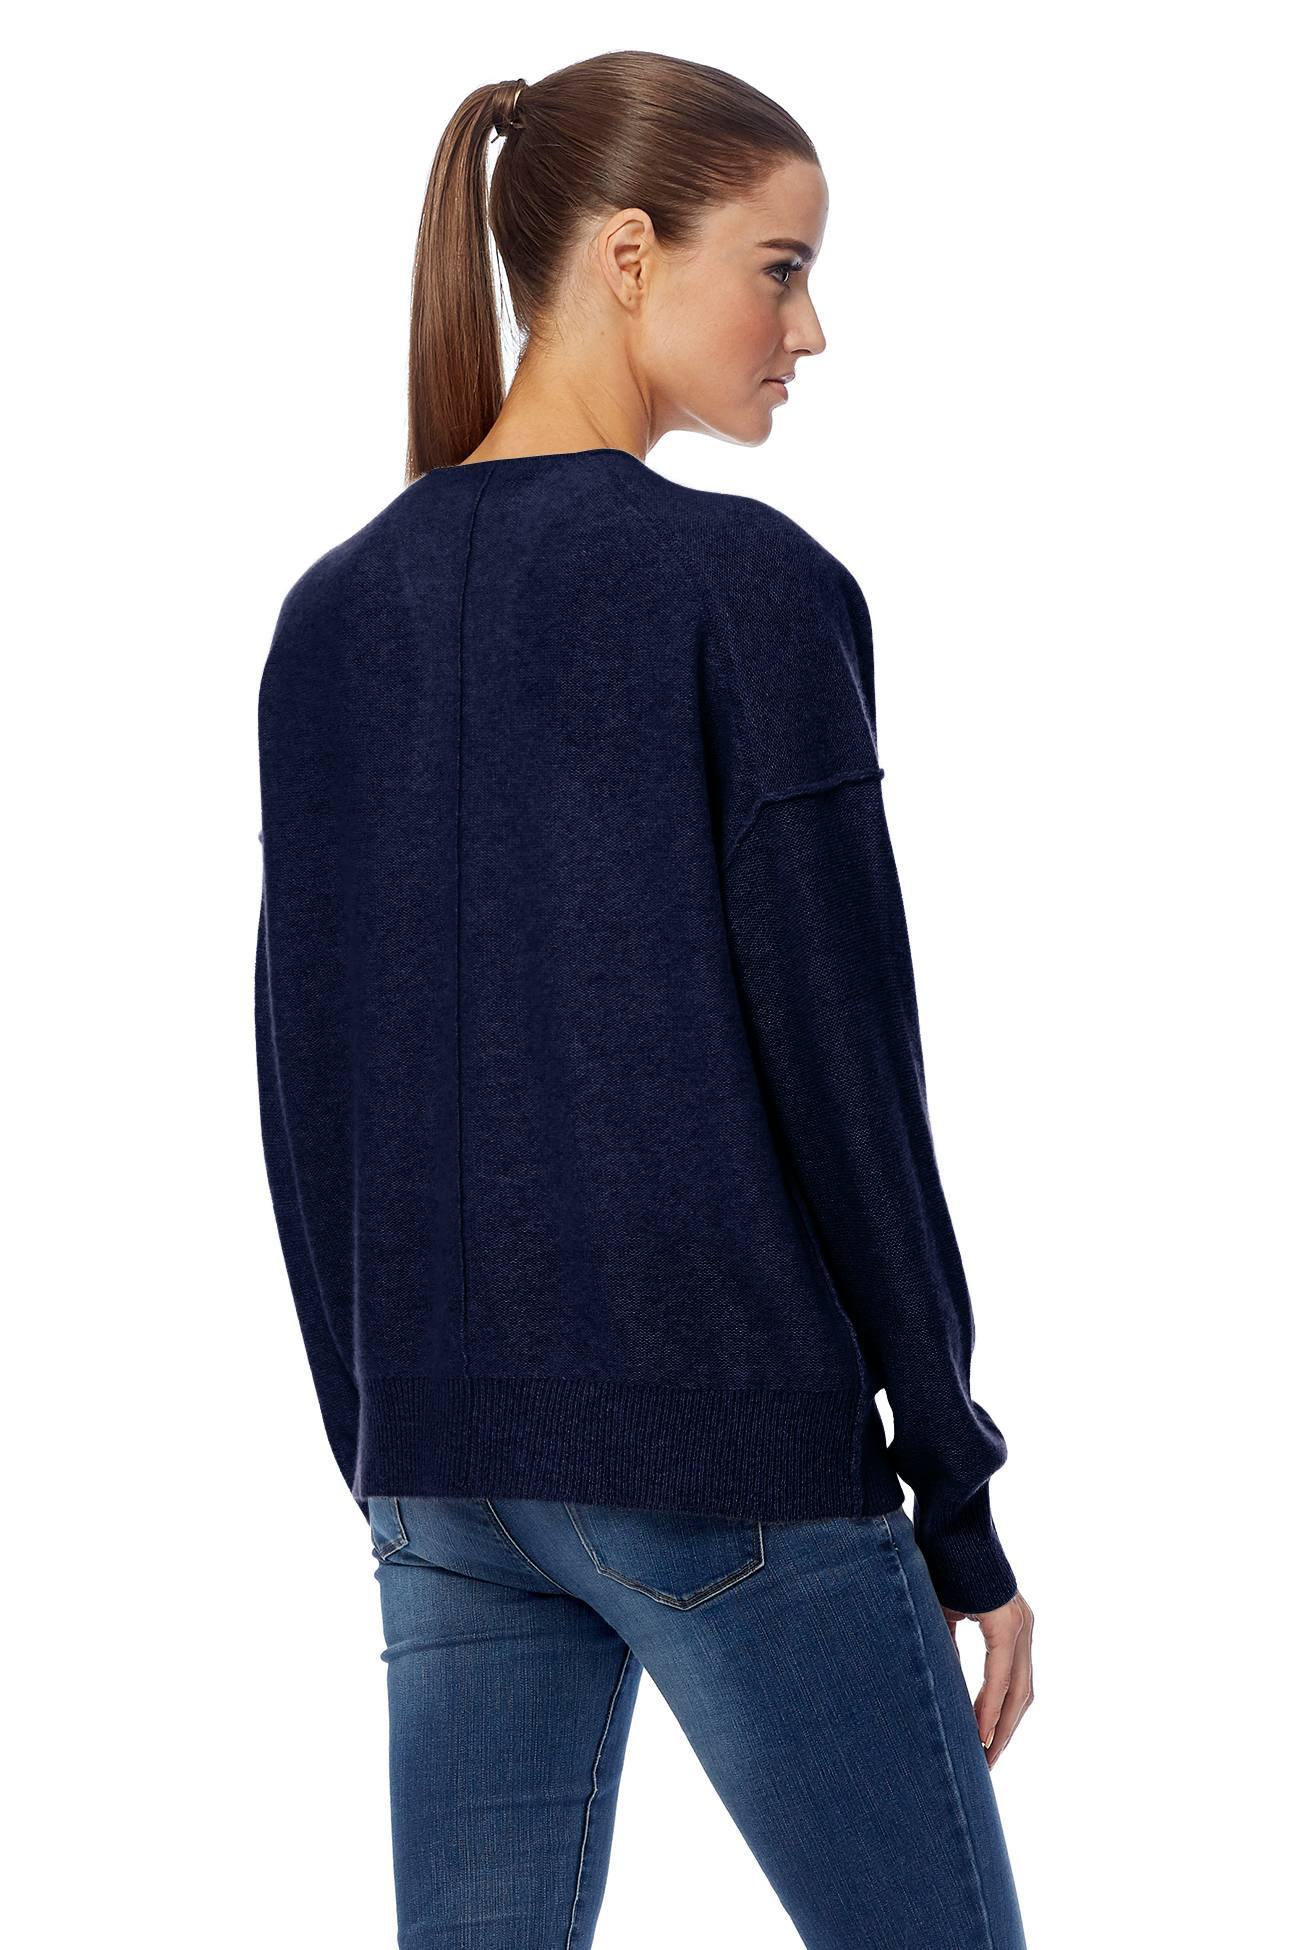 Itzie V-Neck Cardigan - Navy